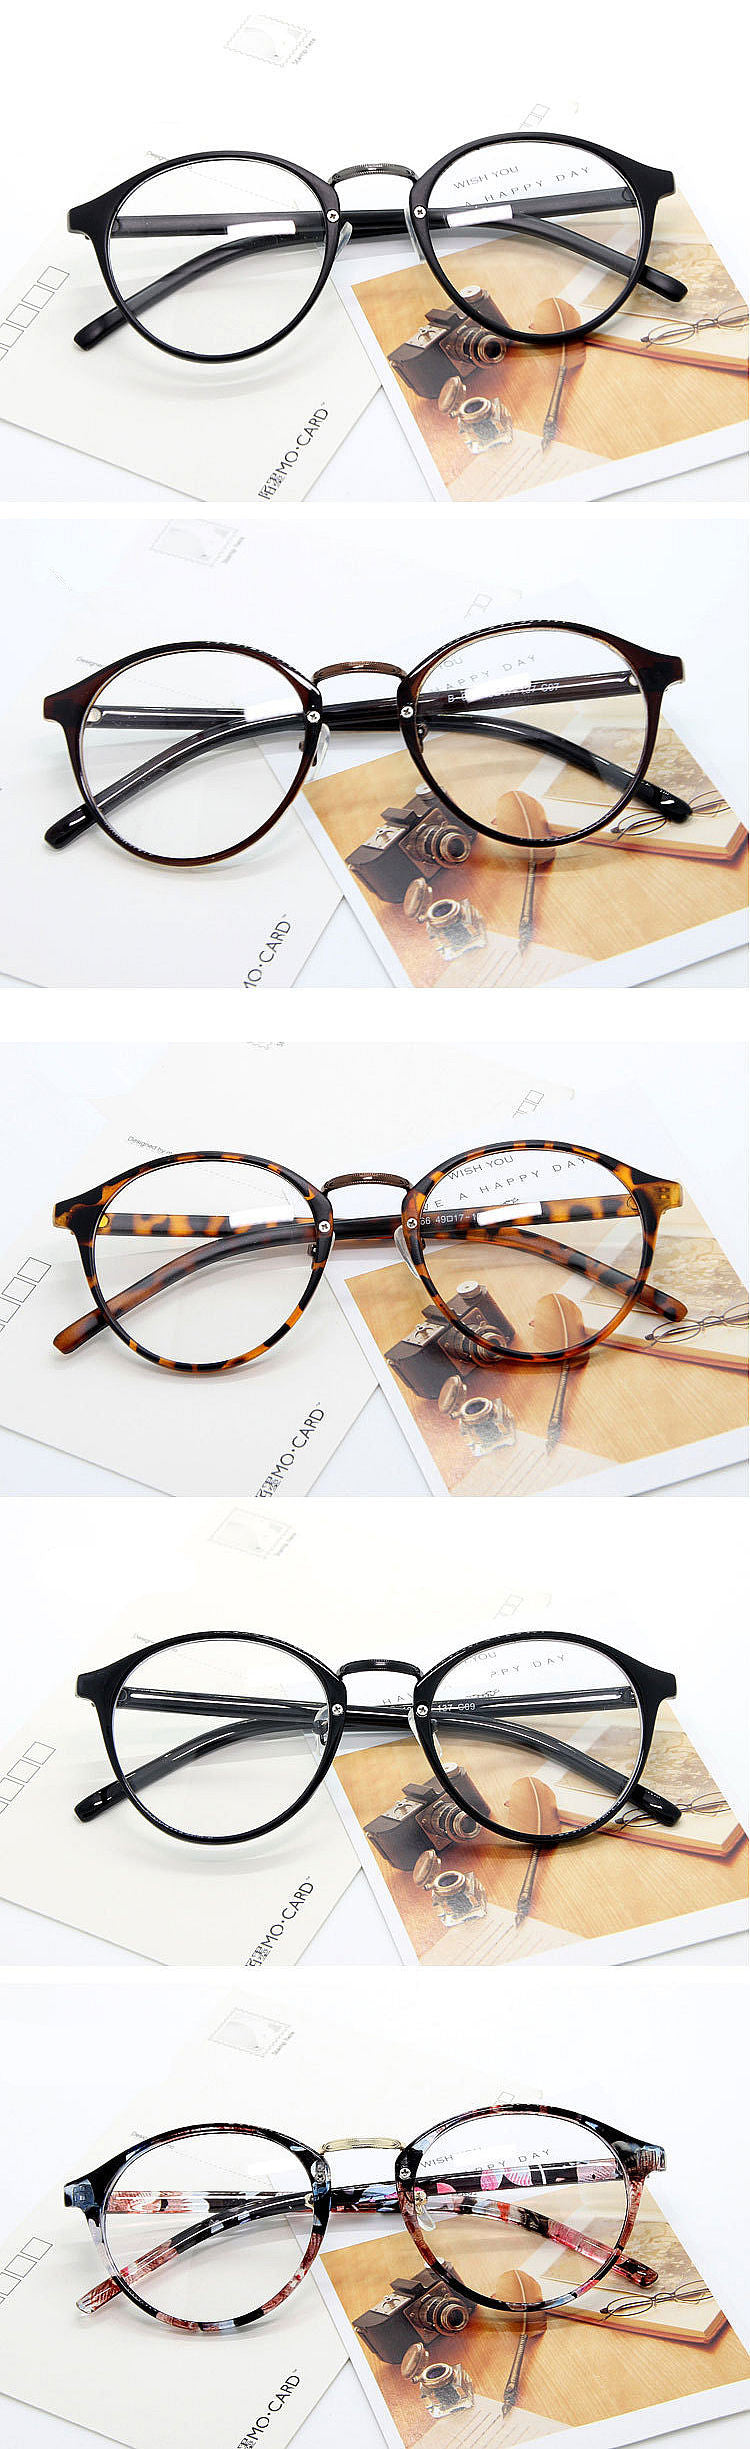 944dcc9c66 UVLAIK Fashion Optical Glasses Frame Glasses With Clear Glass Men Women  Brand Round Clear Transparent Women s